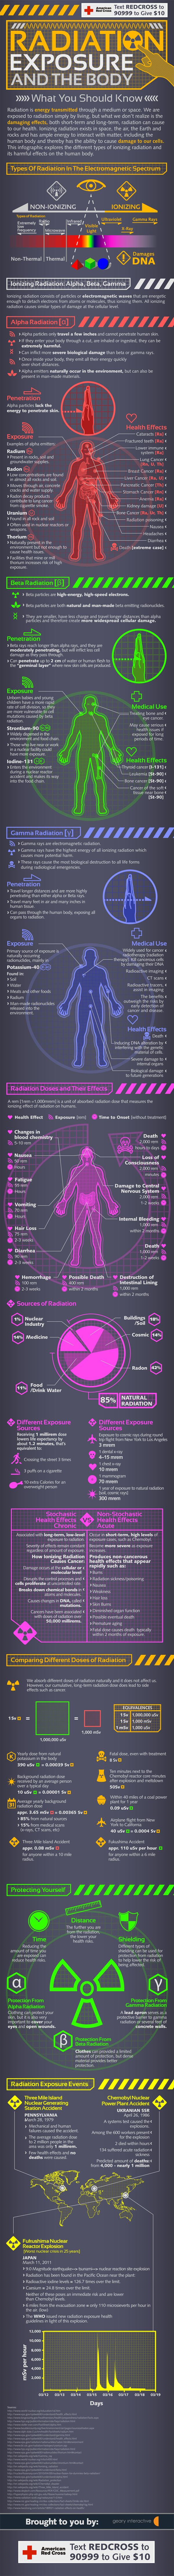 Radiation Exposure and the body.... This would have been helpful in xray school as I was learning this stuff.